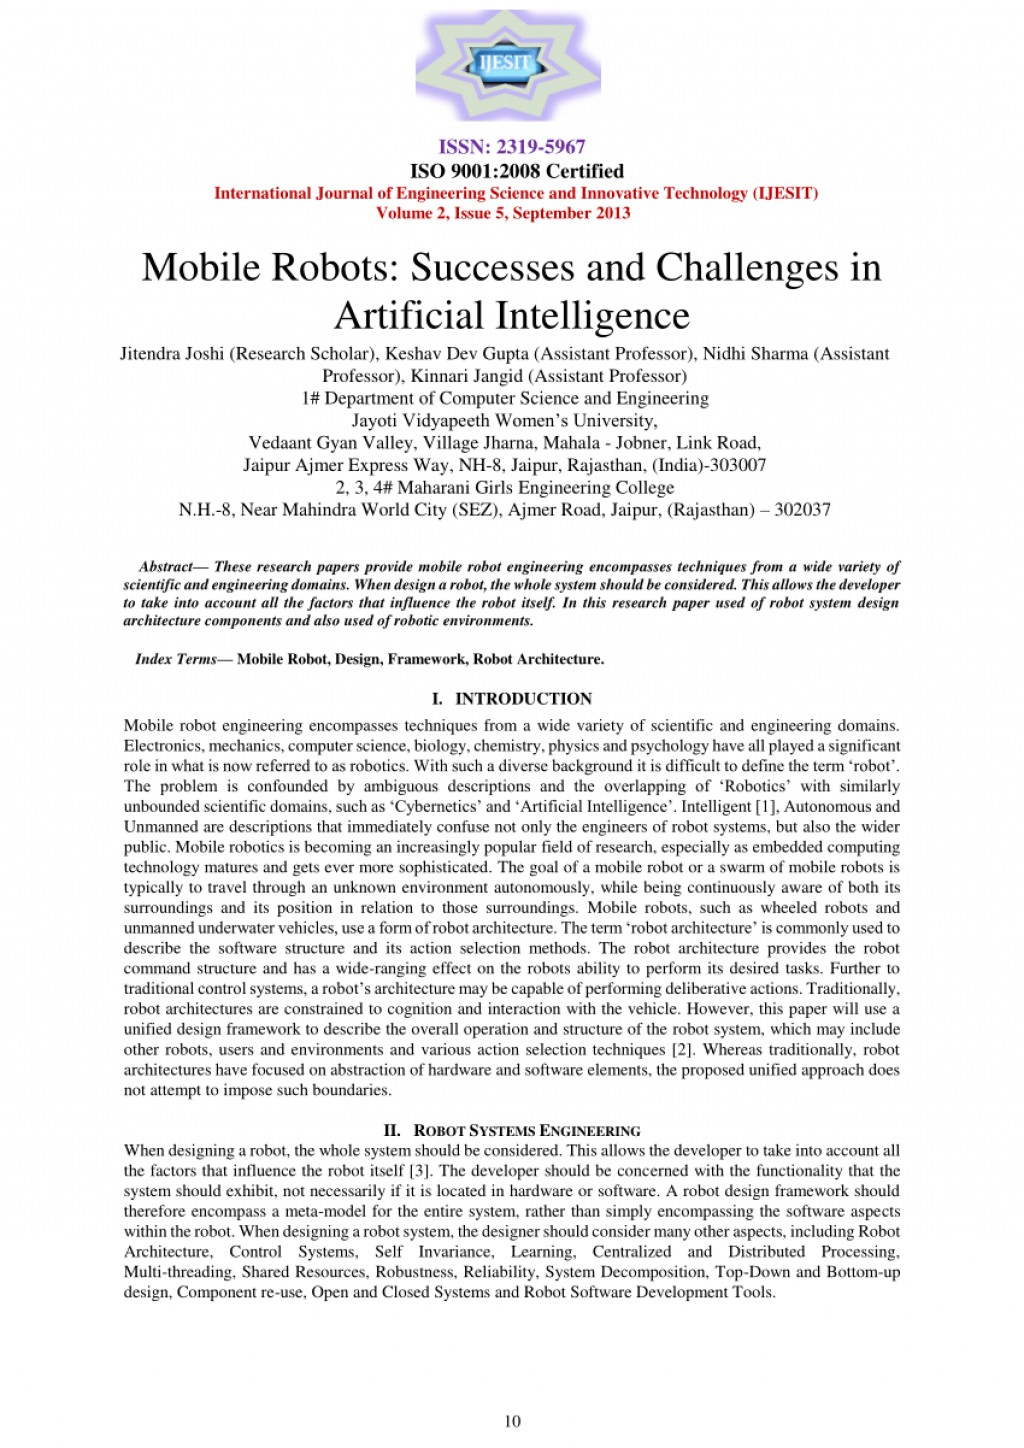 007 Research Paper Papers Artificial Intelligence Imposing On In Marketing Ieee Algorithms Large